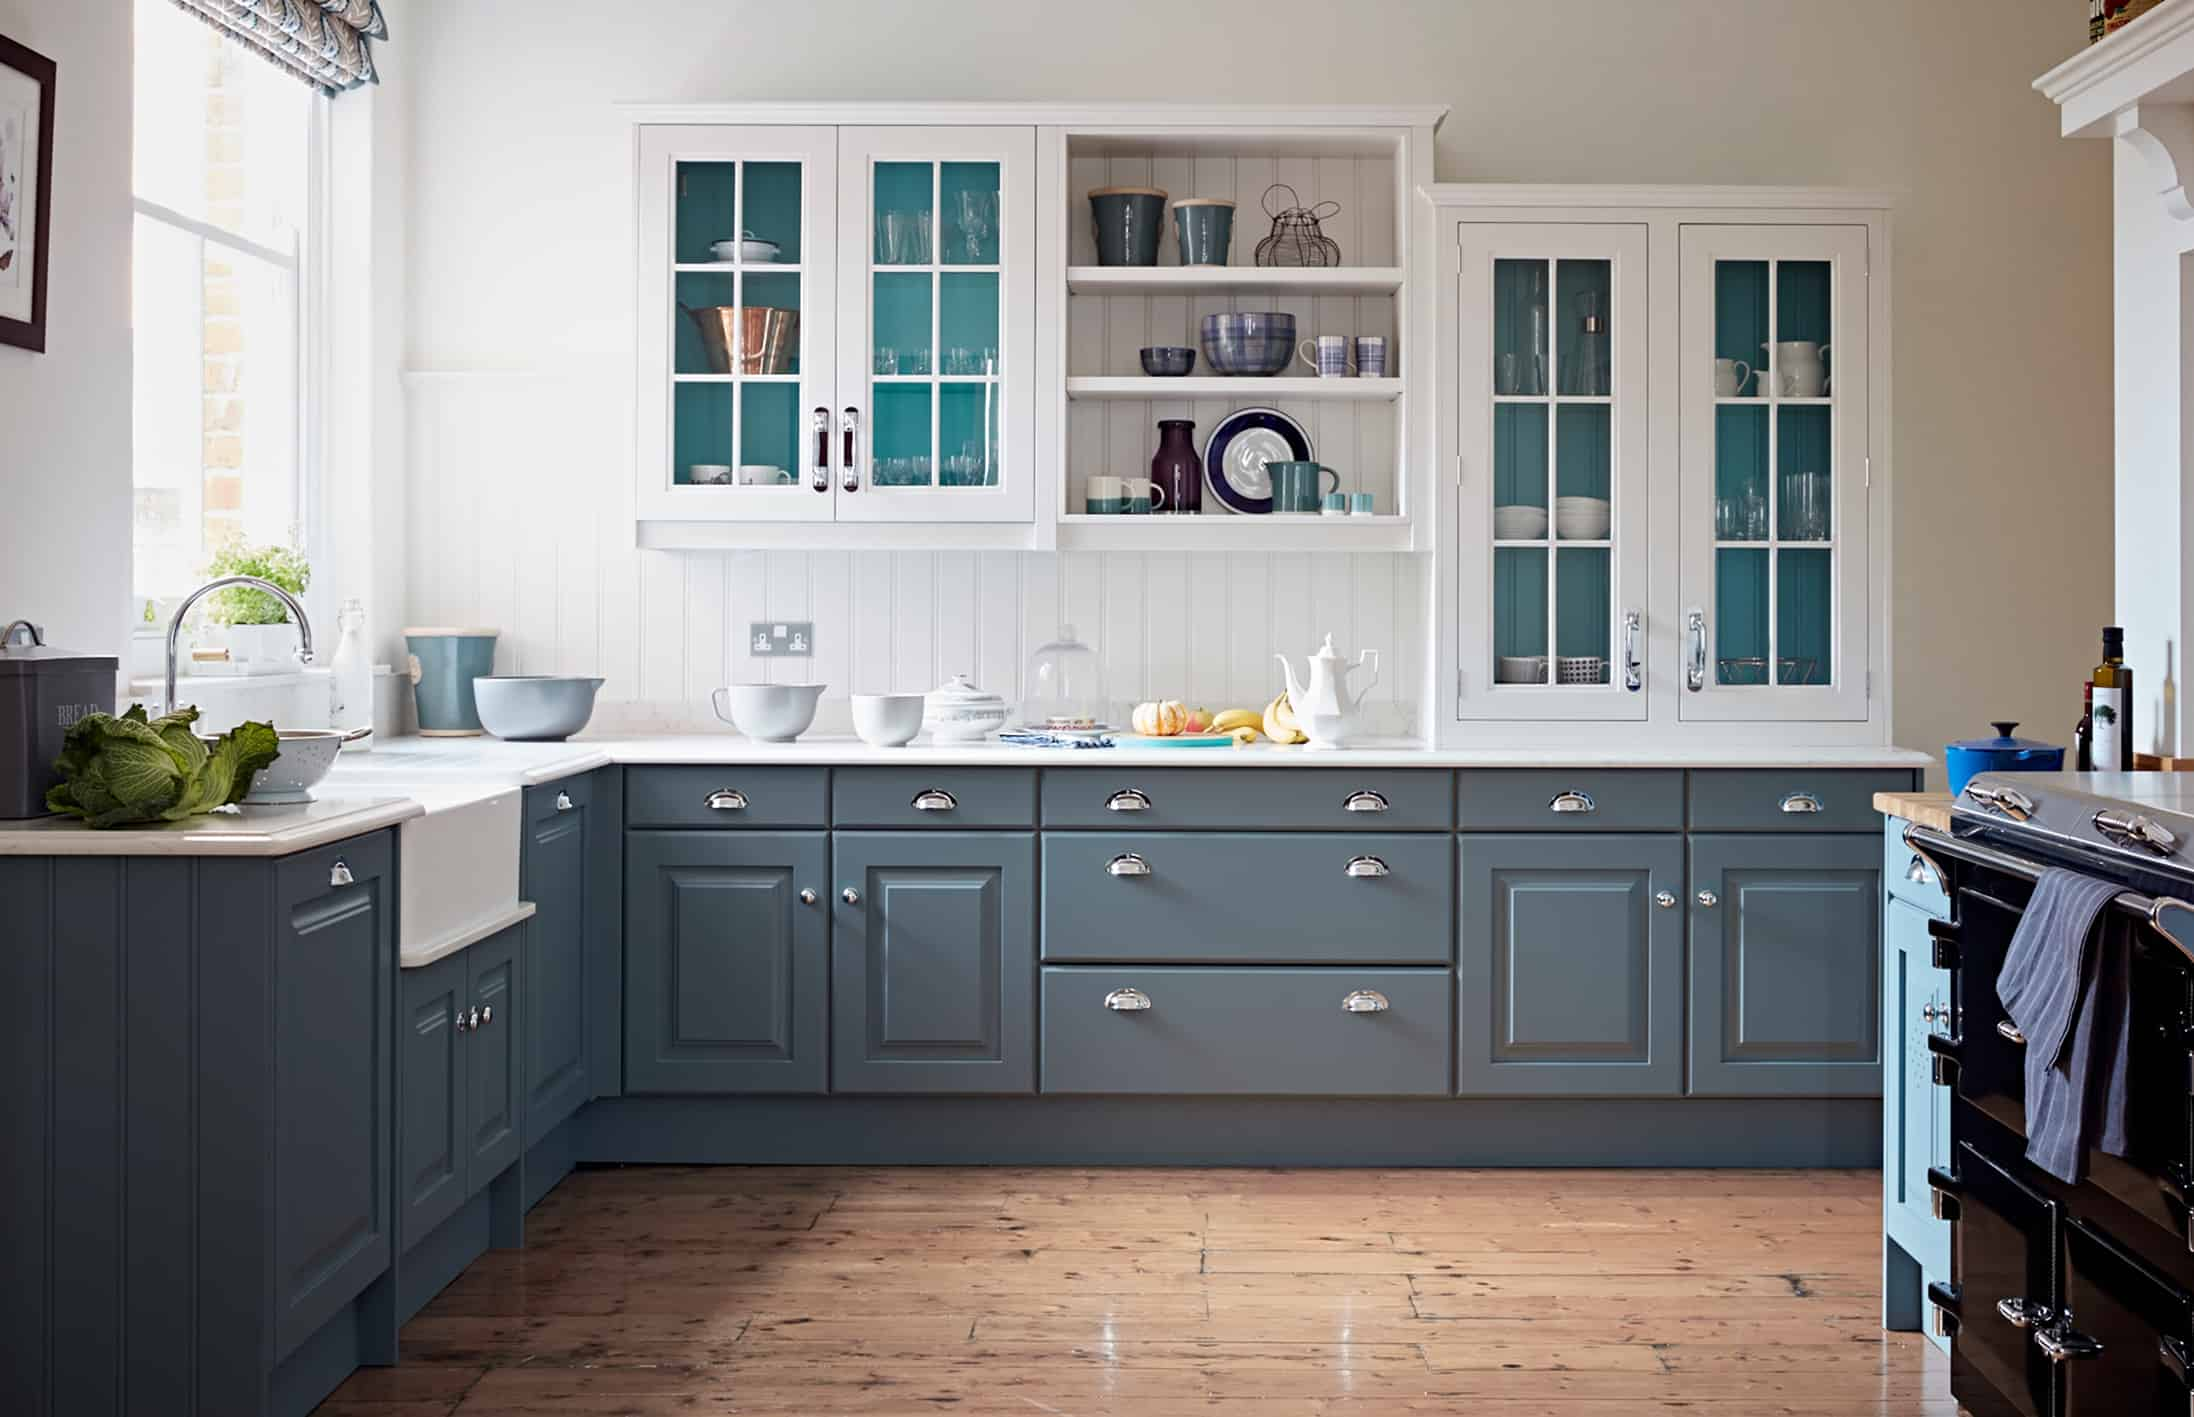 Blue artisan kitchen John Lewis of Hungerford